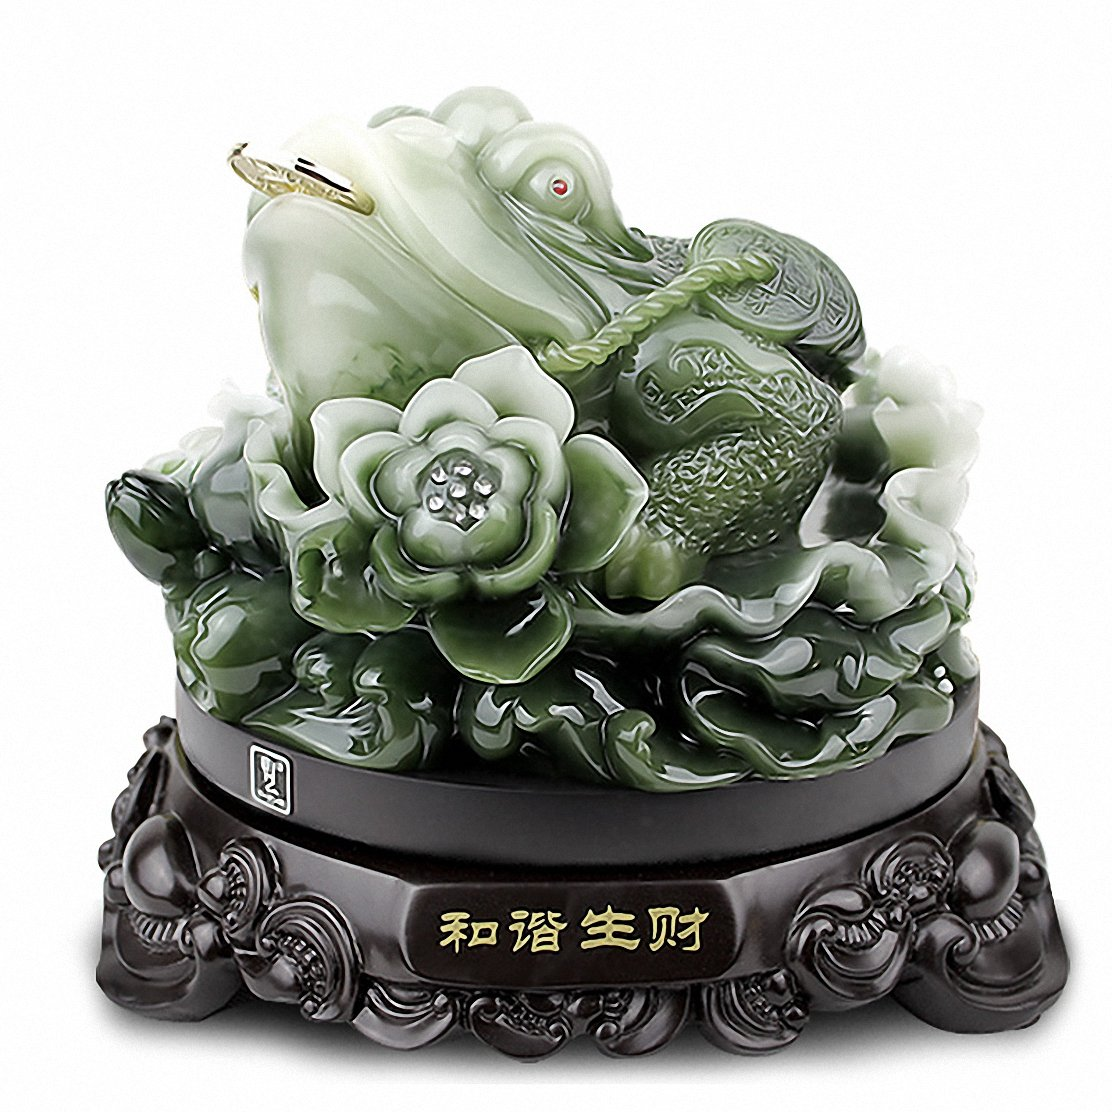 Feng Shui Money Frog Three Legged Wealth Frog or Money Toad Statue,Best Housewarming Congratulatory Gift,Attract Wealth and Good Luck,Feng Shui Decor,10 W x 8.8 H